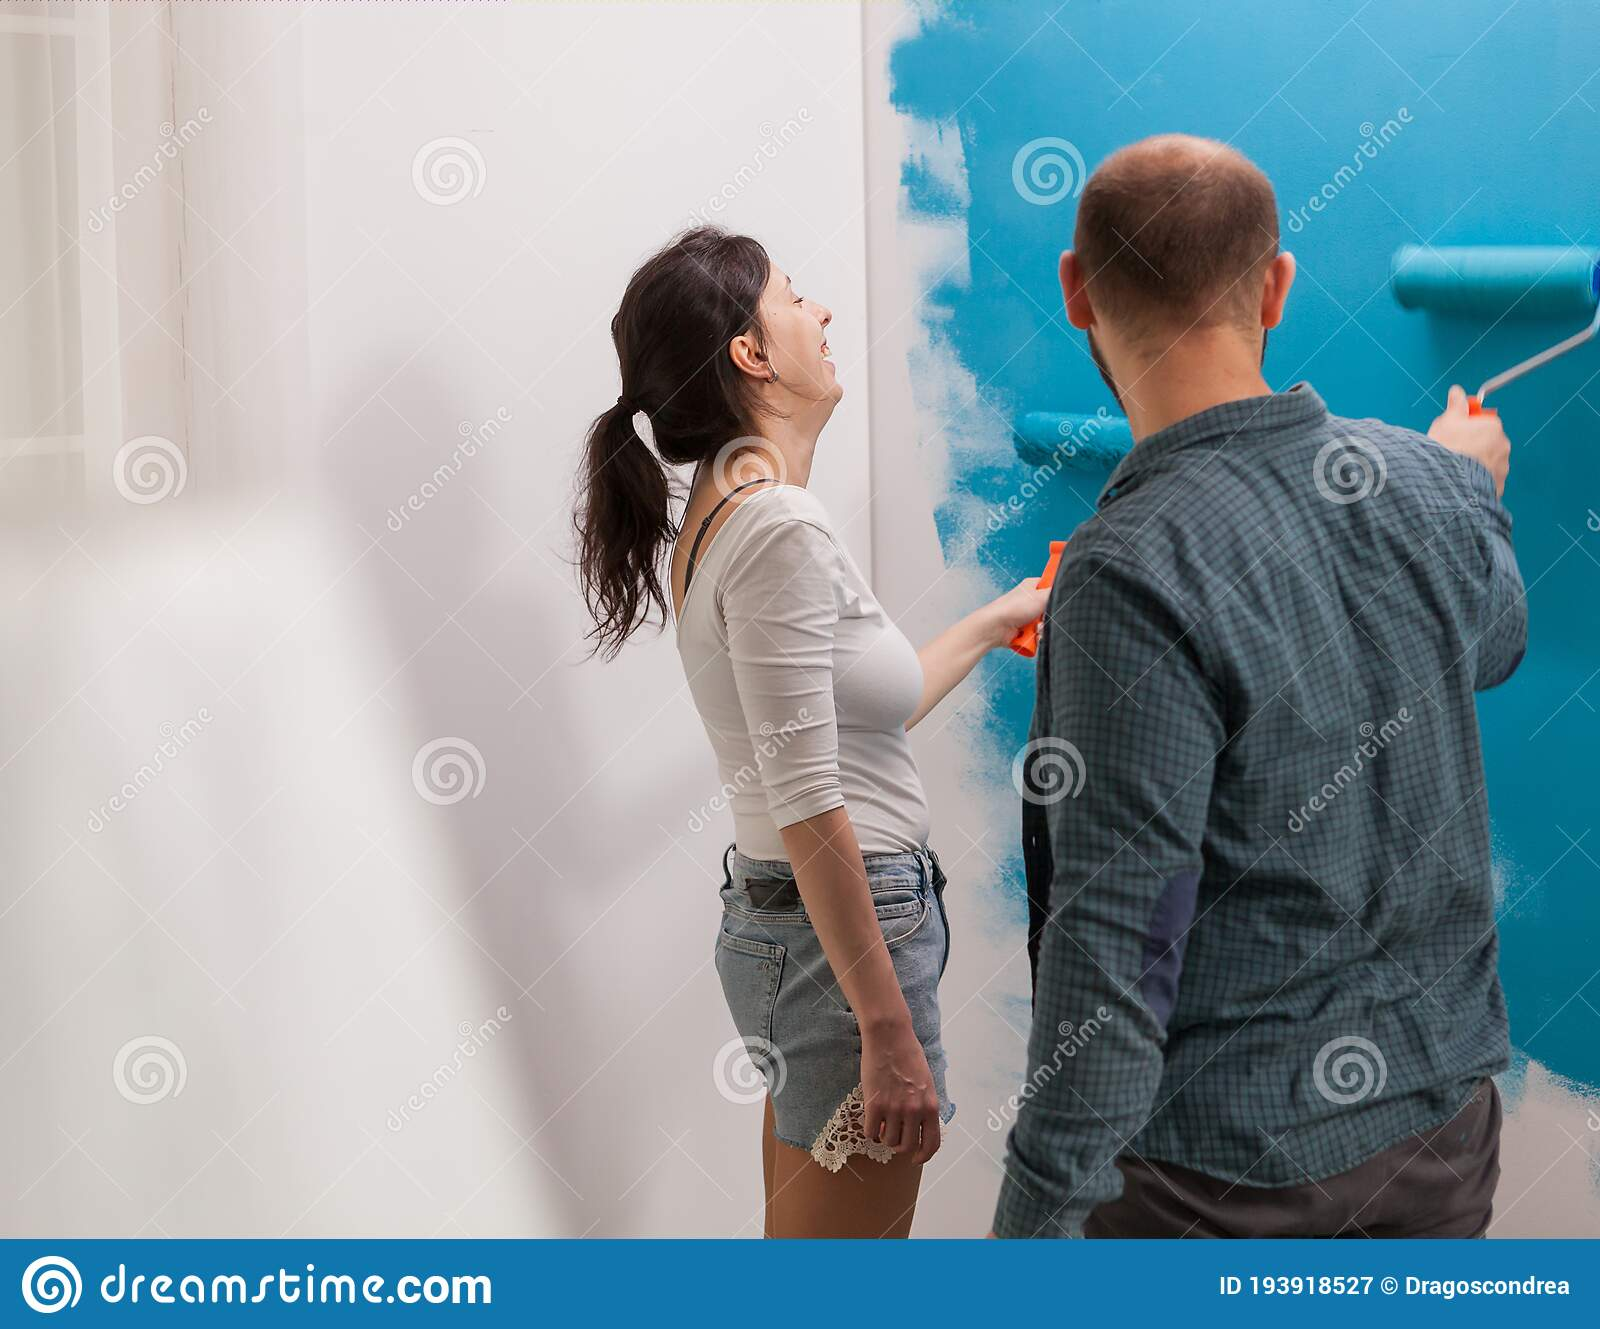 Having Fun Painting The Wall Stock Image Image Of Girl Lifestyle 193918527